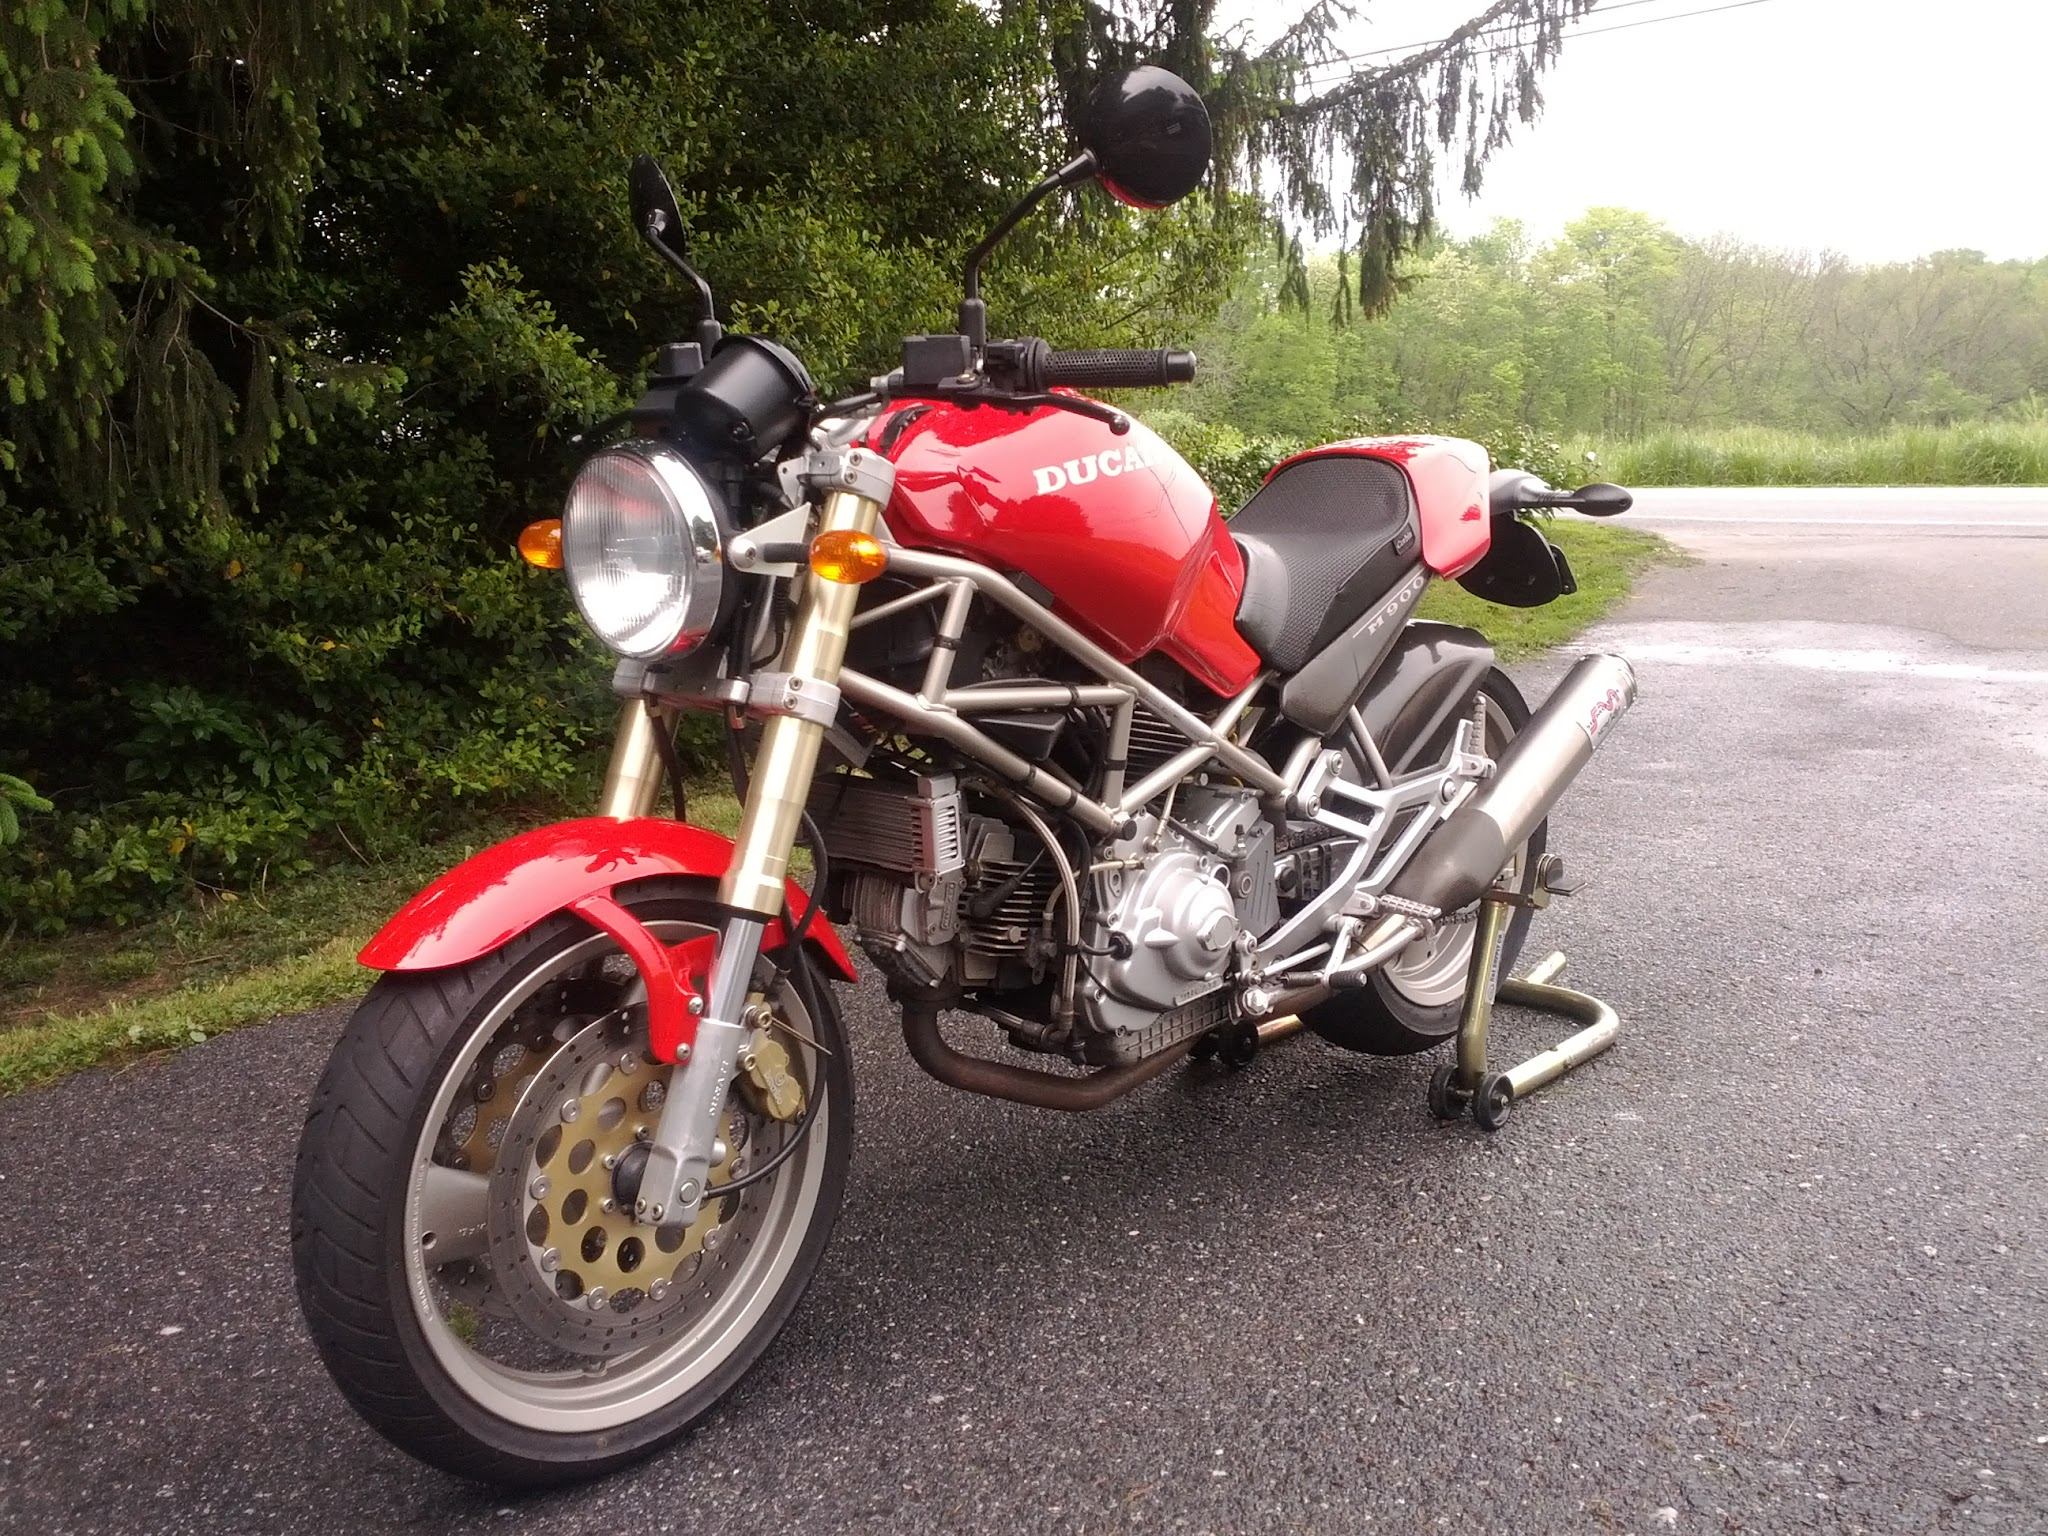 thinking of selling my 95 m900 - ducati monster forums: ducati